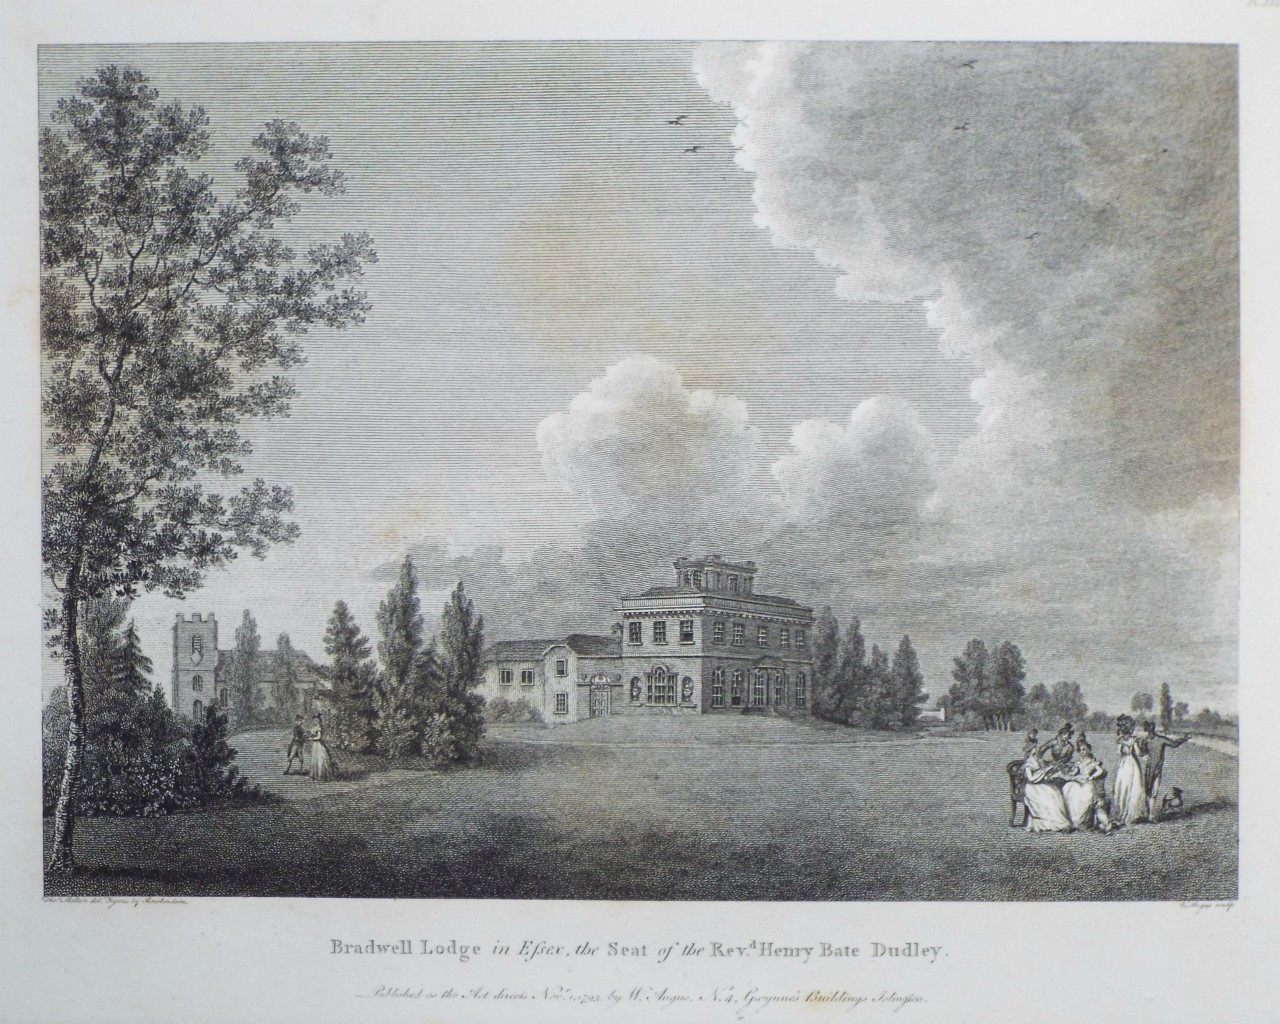 Print - Bradwell Lodge in Essex, the Seay of the Revd. Henry Bate Dudley. - Angus